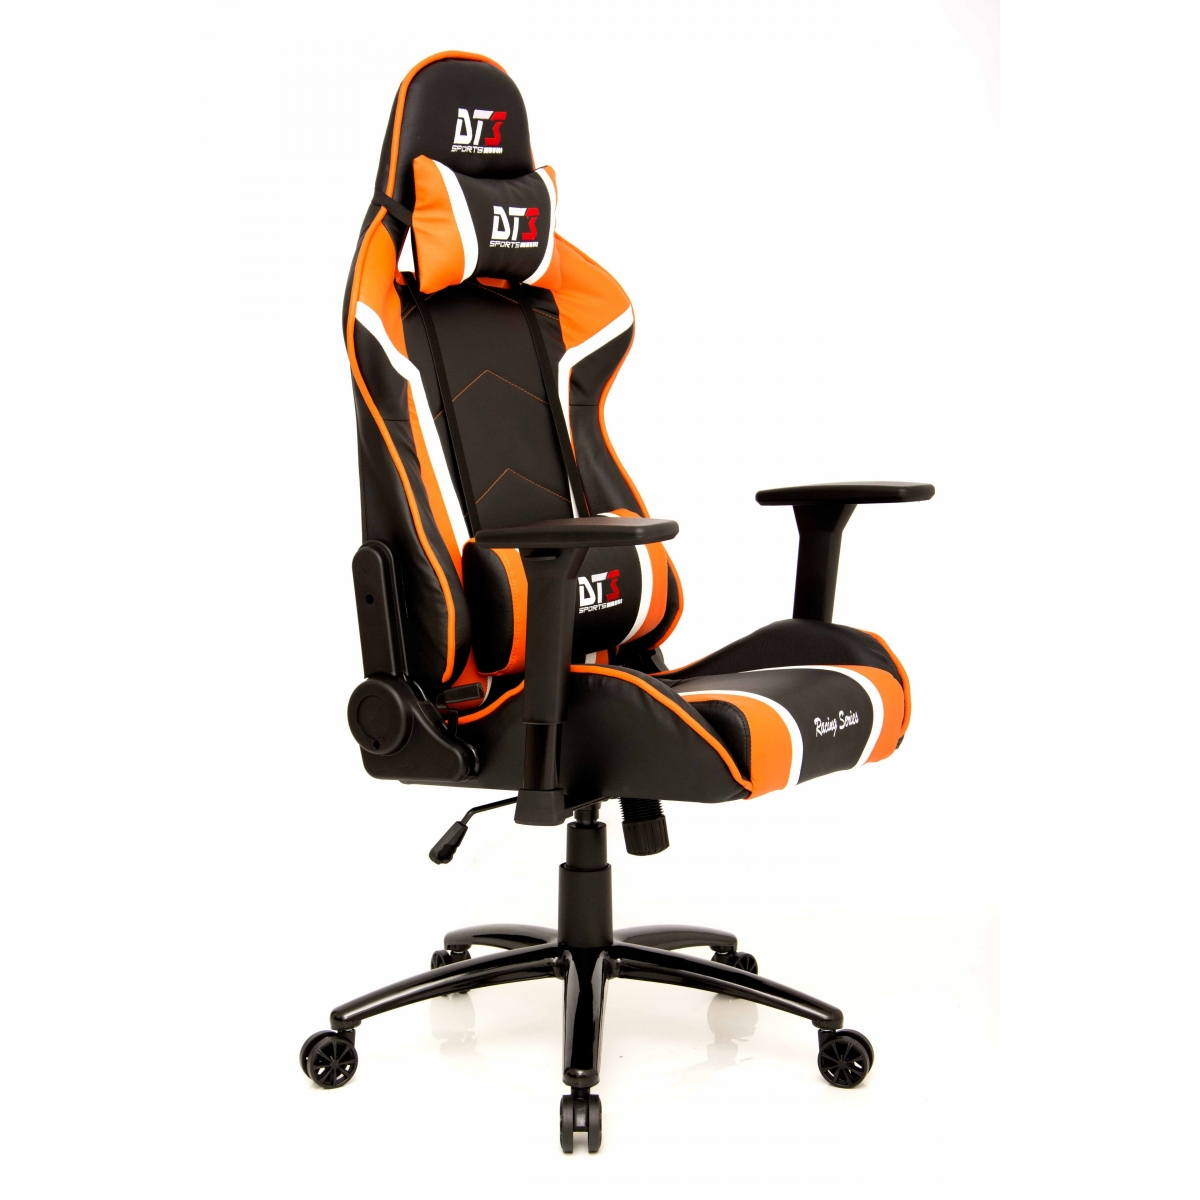 Cadeira Gamer DT3Sports Modena, Black-Orange